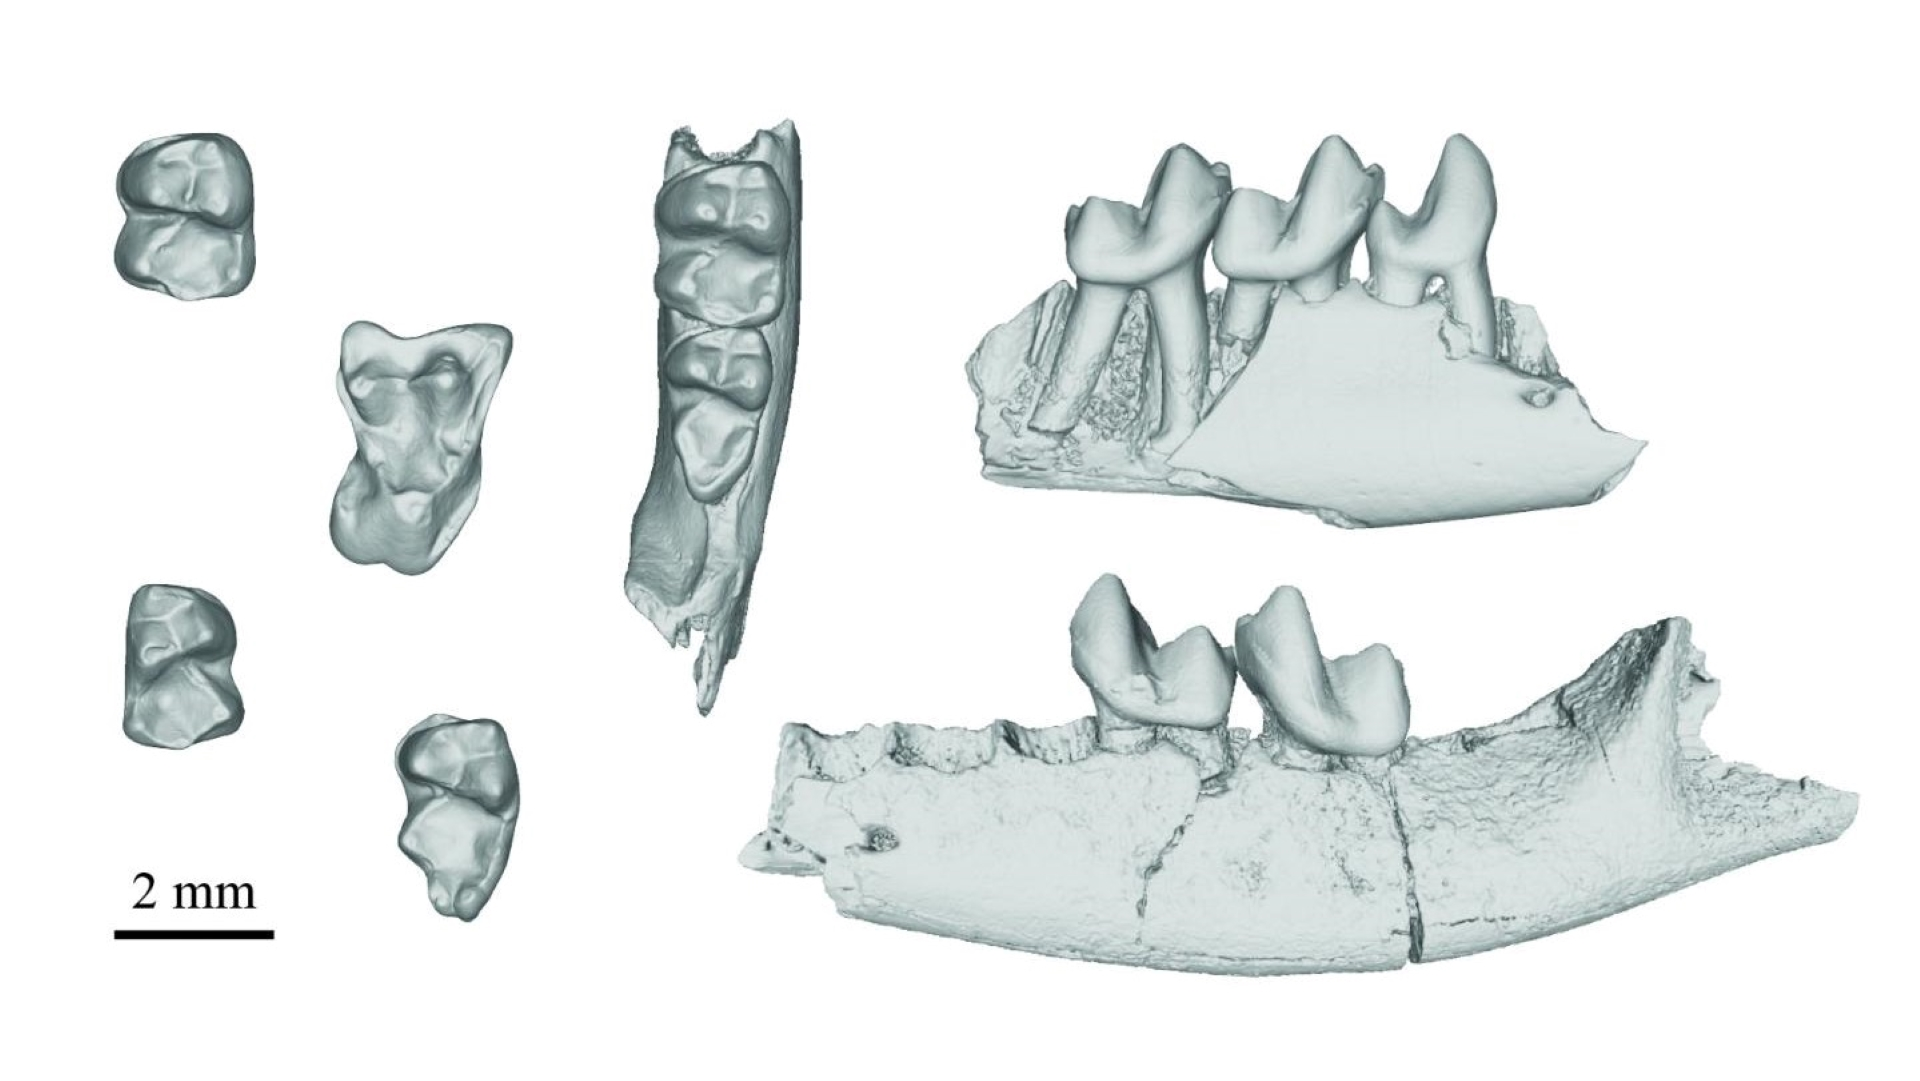 An image of several CT scans showing fossilized teeth and jaw bones from Purgatorius species.